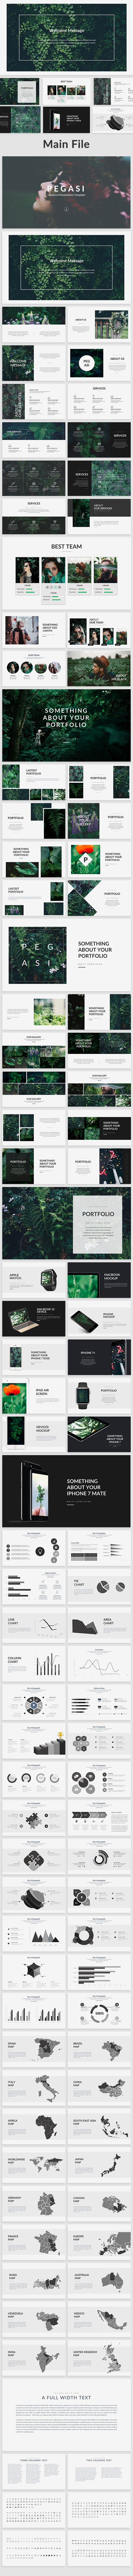 Pegasi - Creative Powerpoint Template - Creative #PowerPoint #Templates Download here: https://graphicriver.net/item/pegasi-creative-powerpoint-template/19535533?ref=alena994